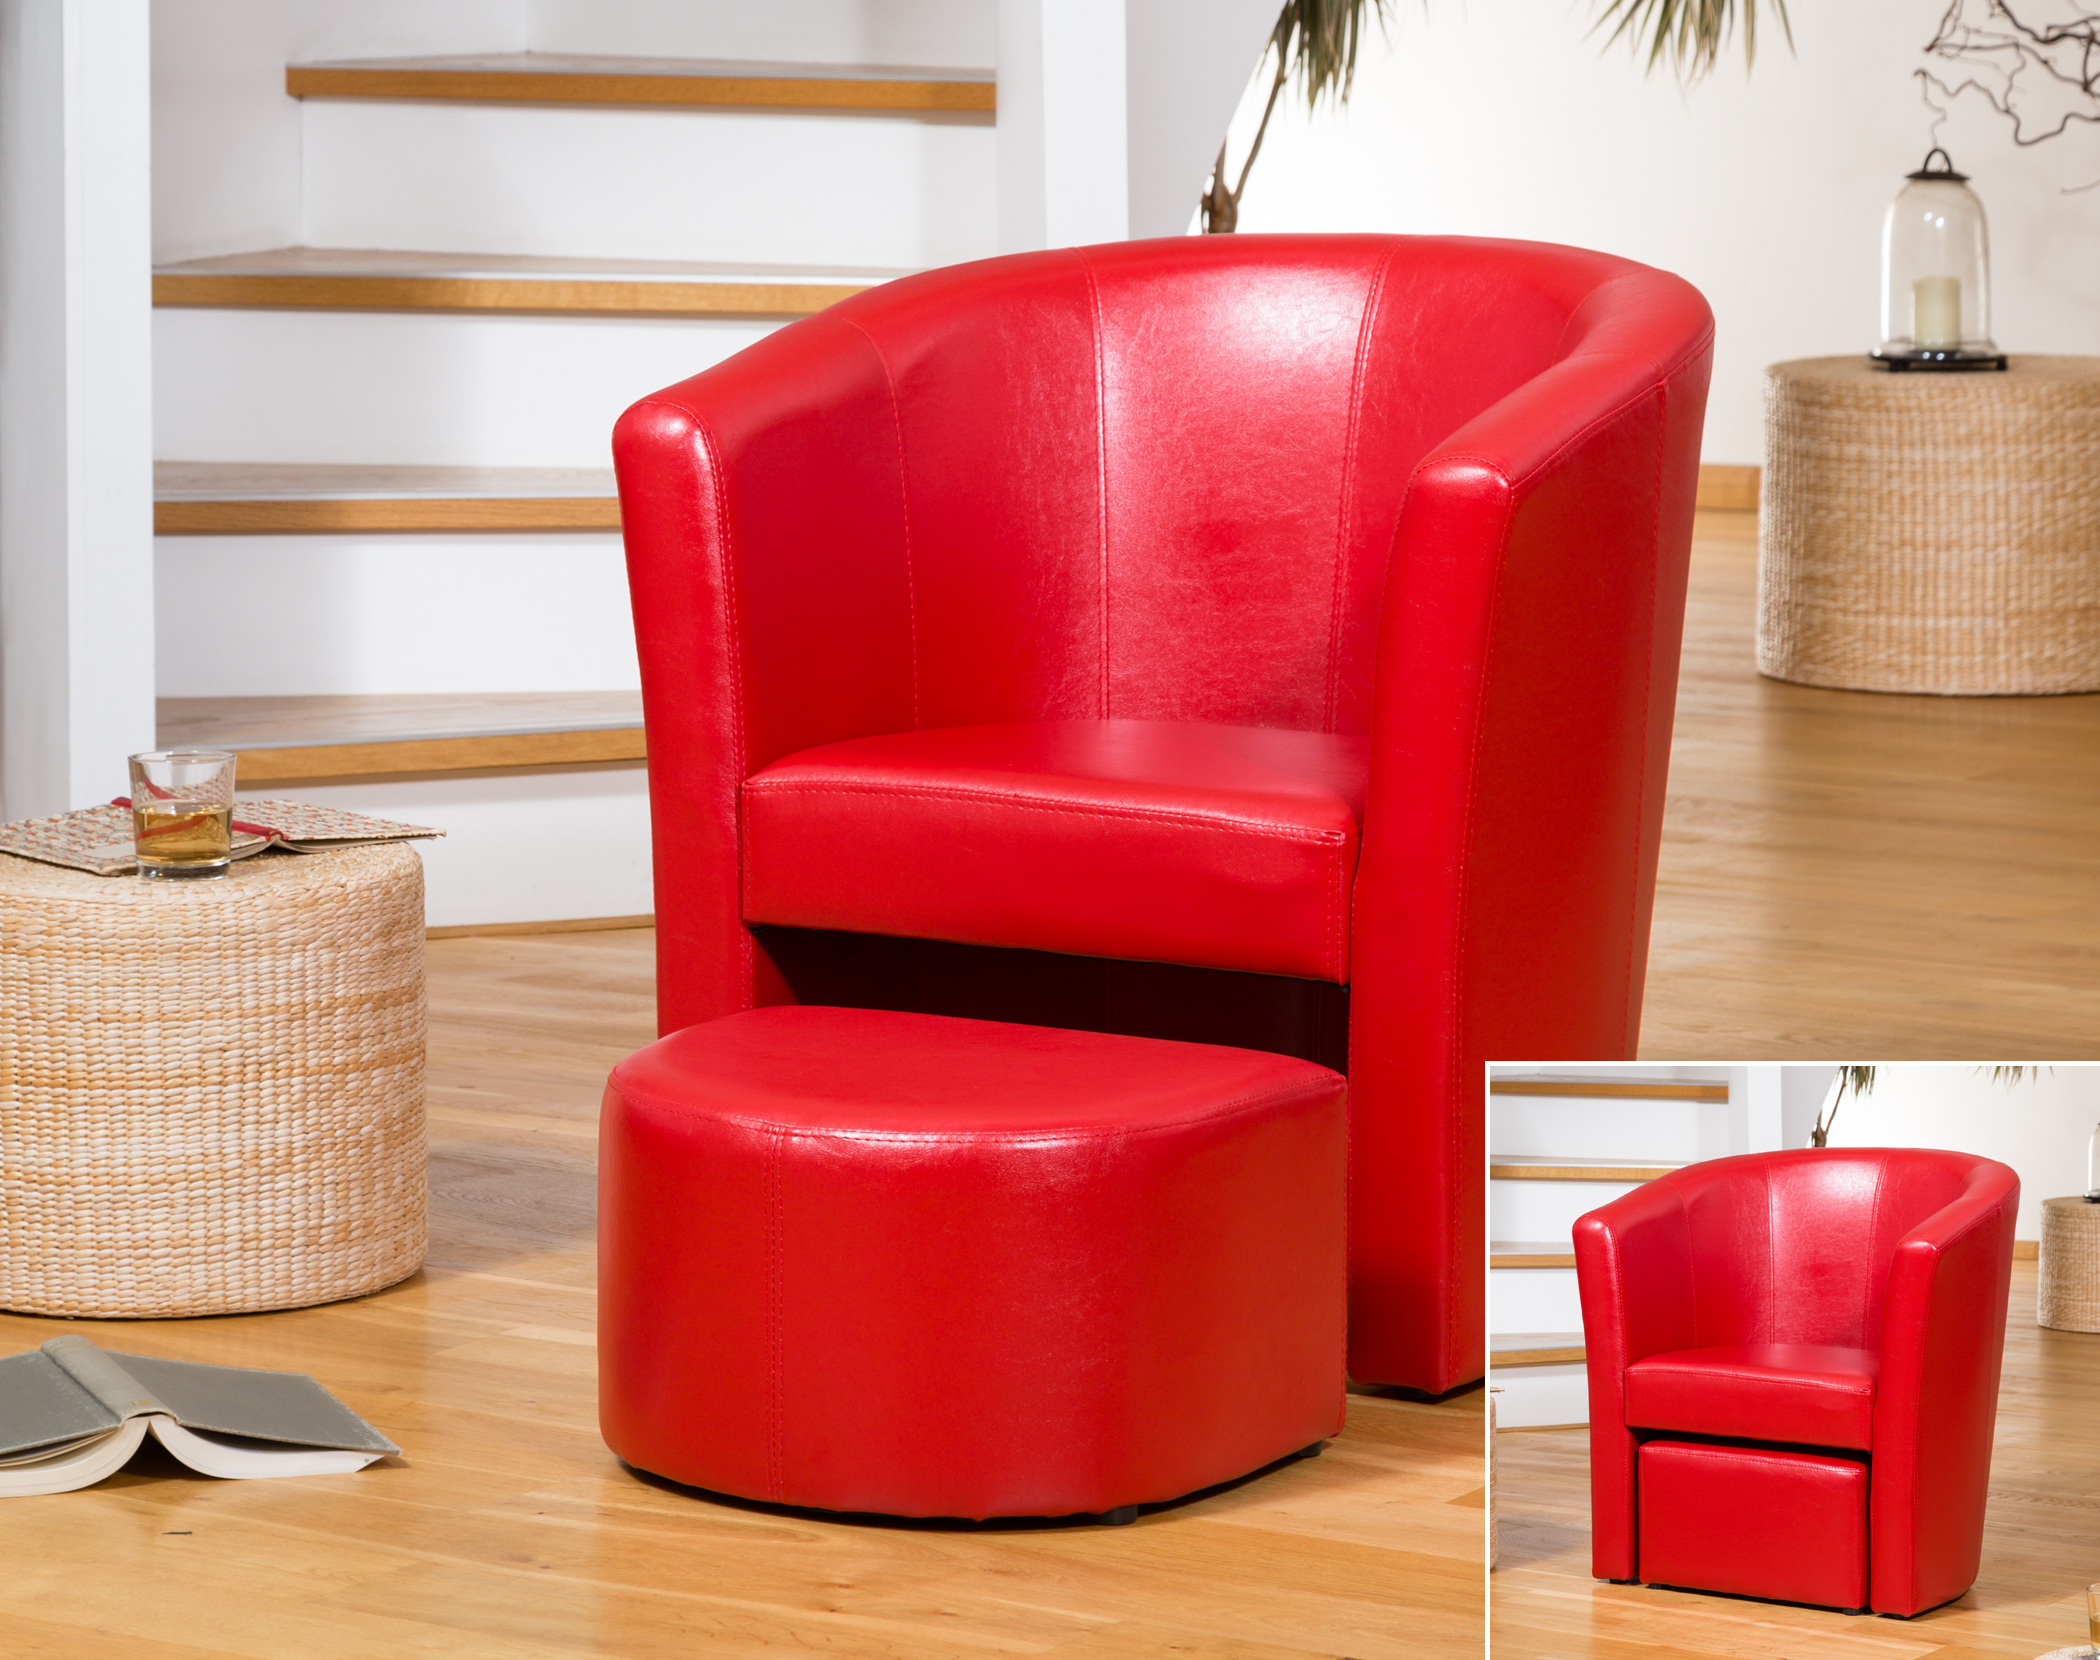 Berwick tub chair red